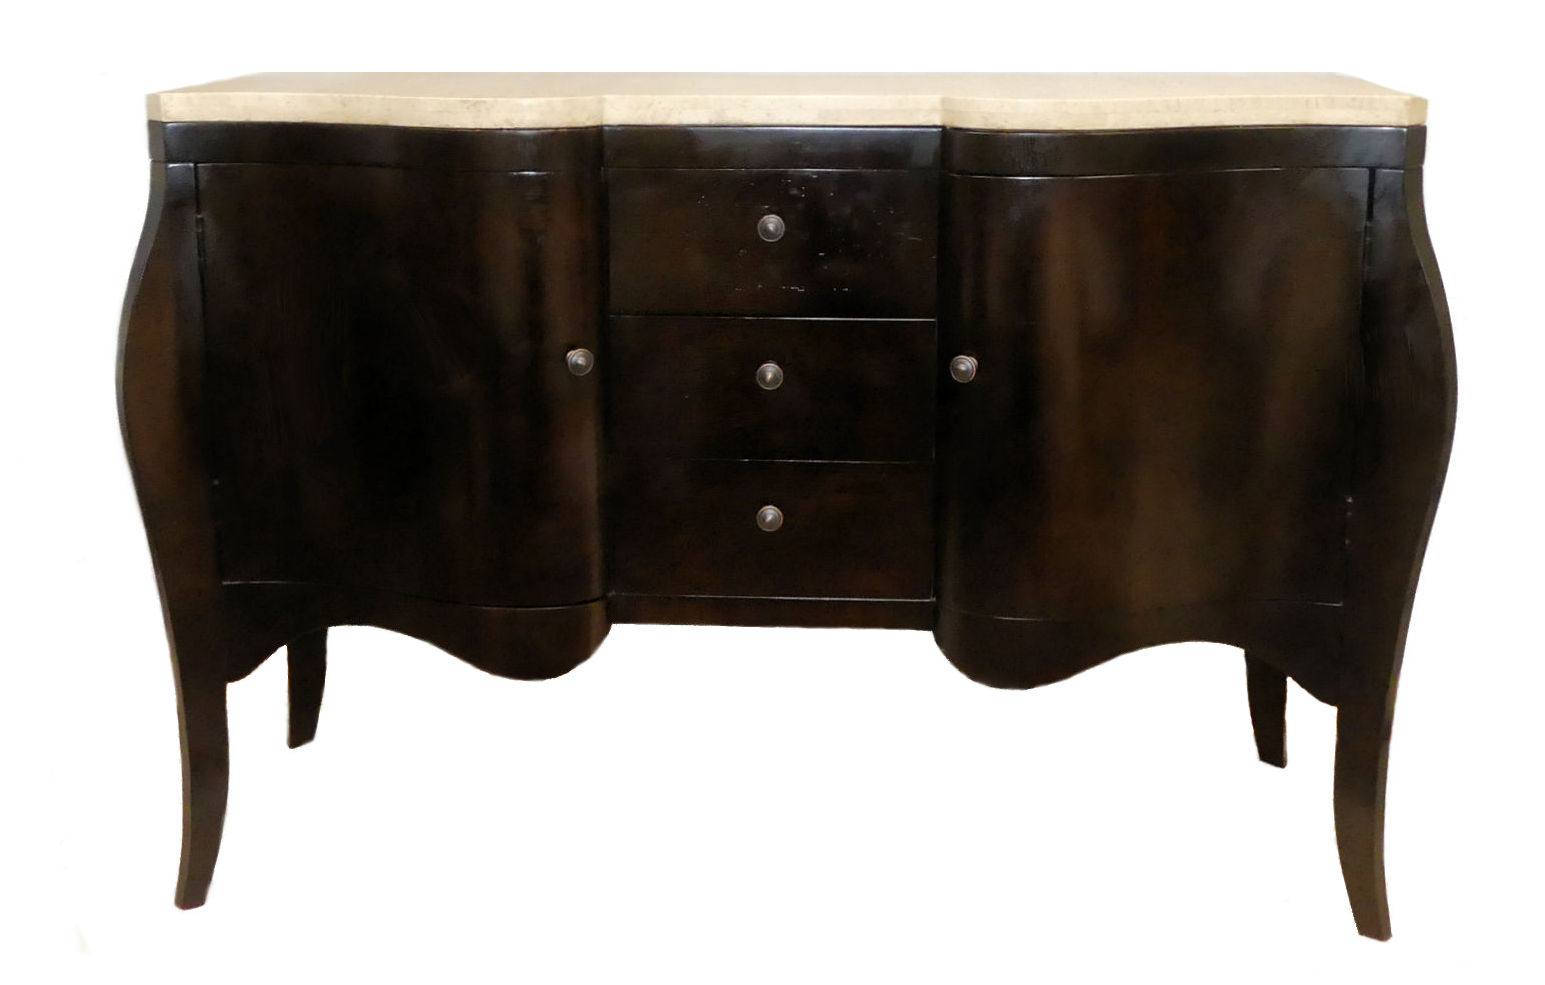 SOLD  Contemporary Serpentine Stone Top Sideboard or Buffet